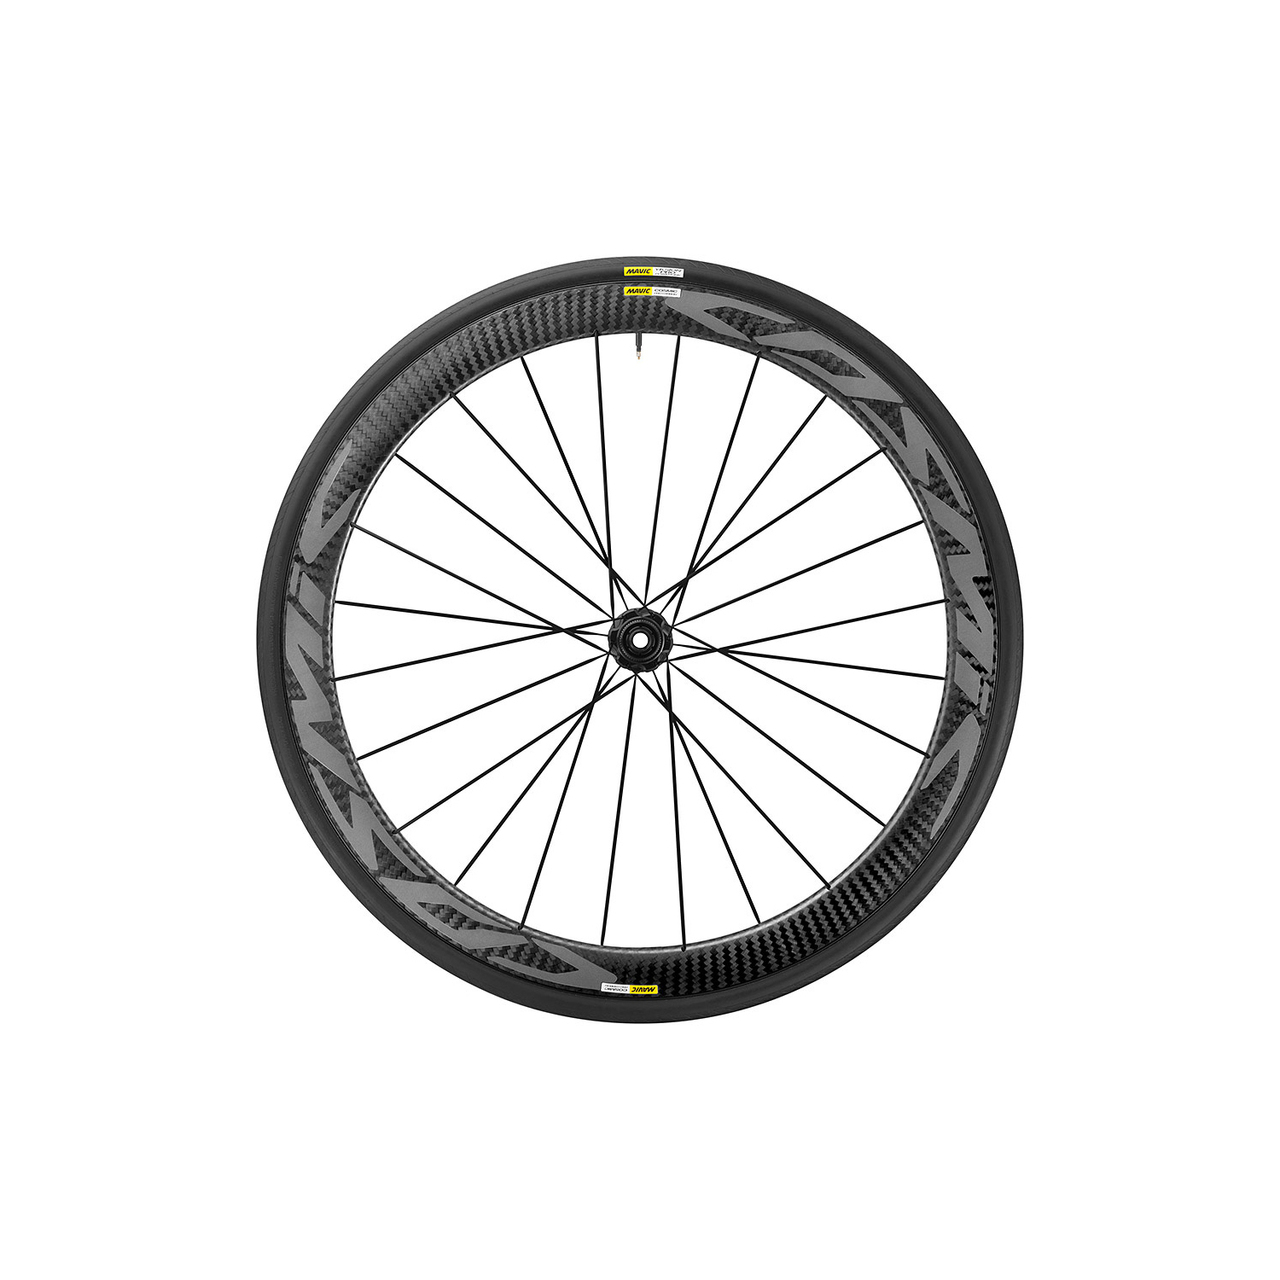 2018 Mavic Cosmic Pro Carbon Disc WTS Wheel Set